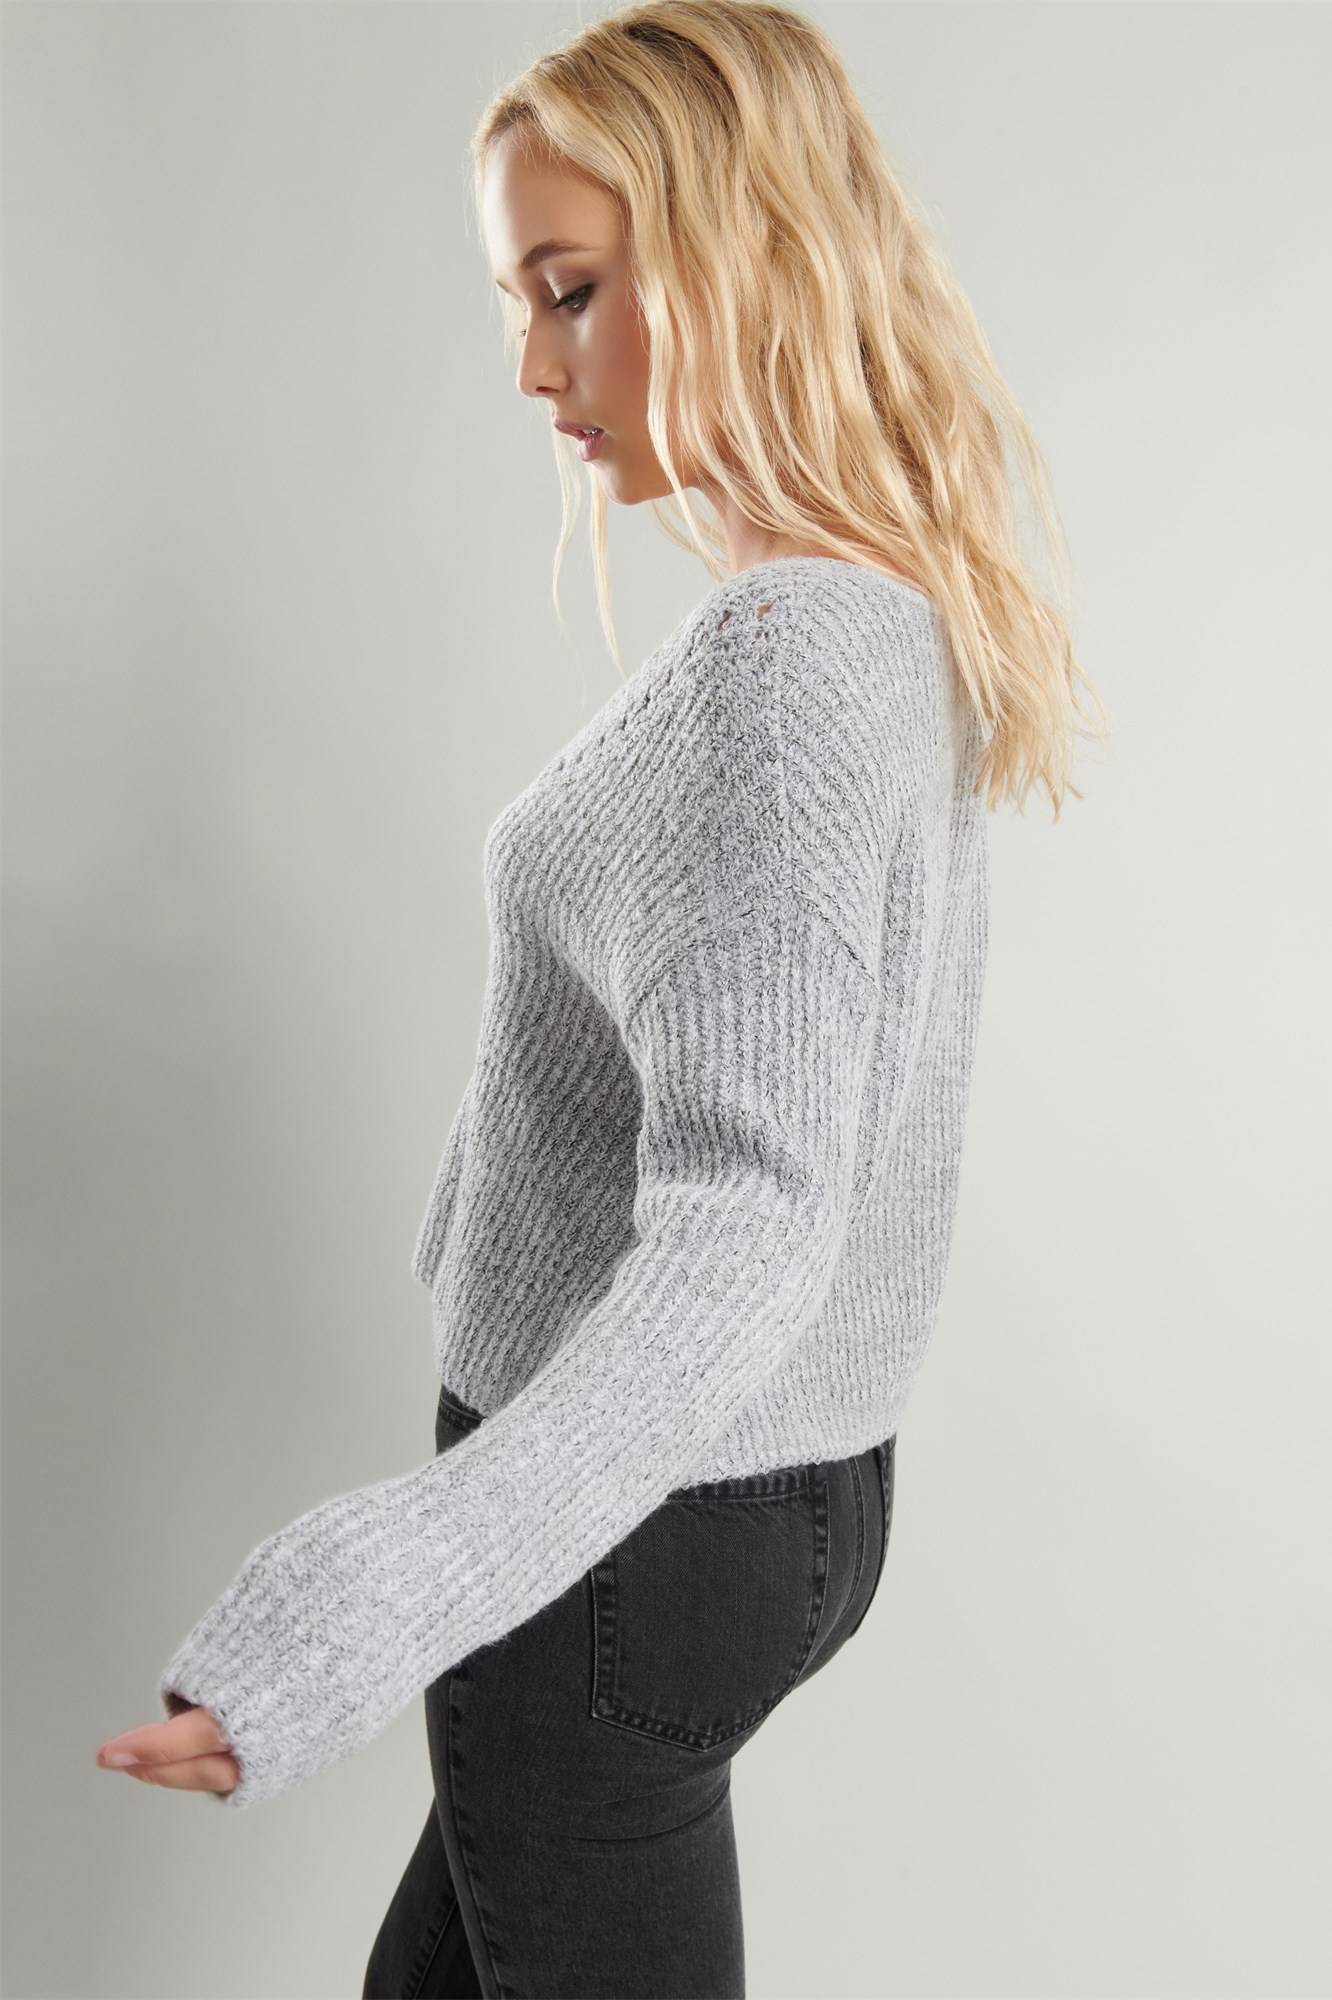 Image 4 of The Kendall V Sweater